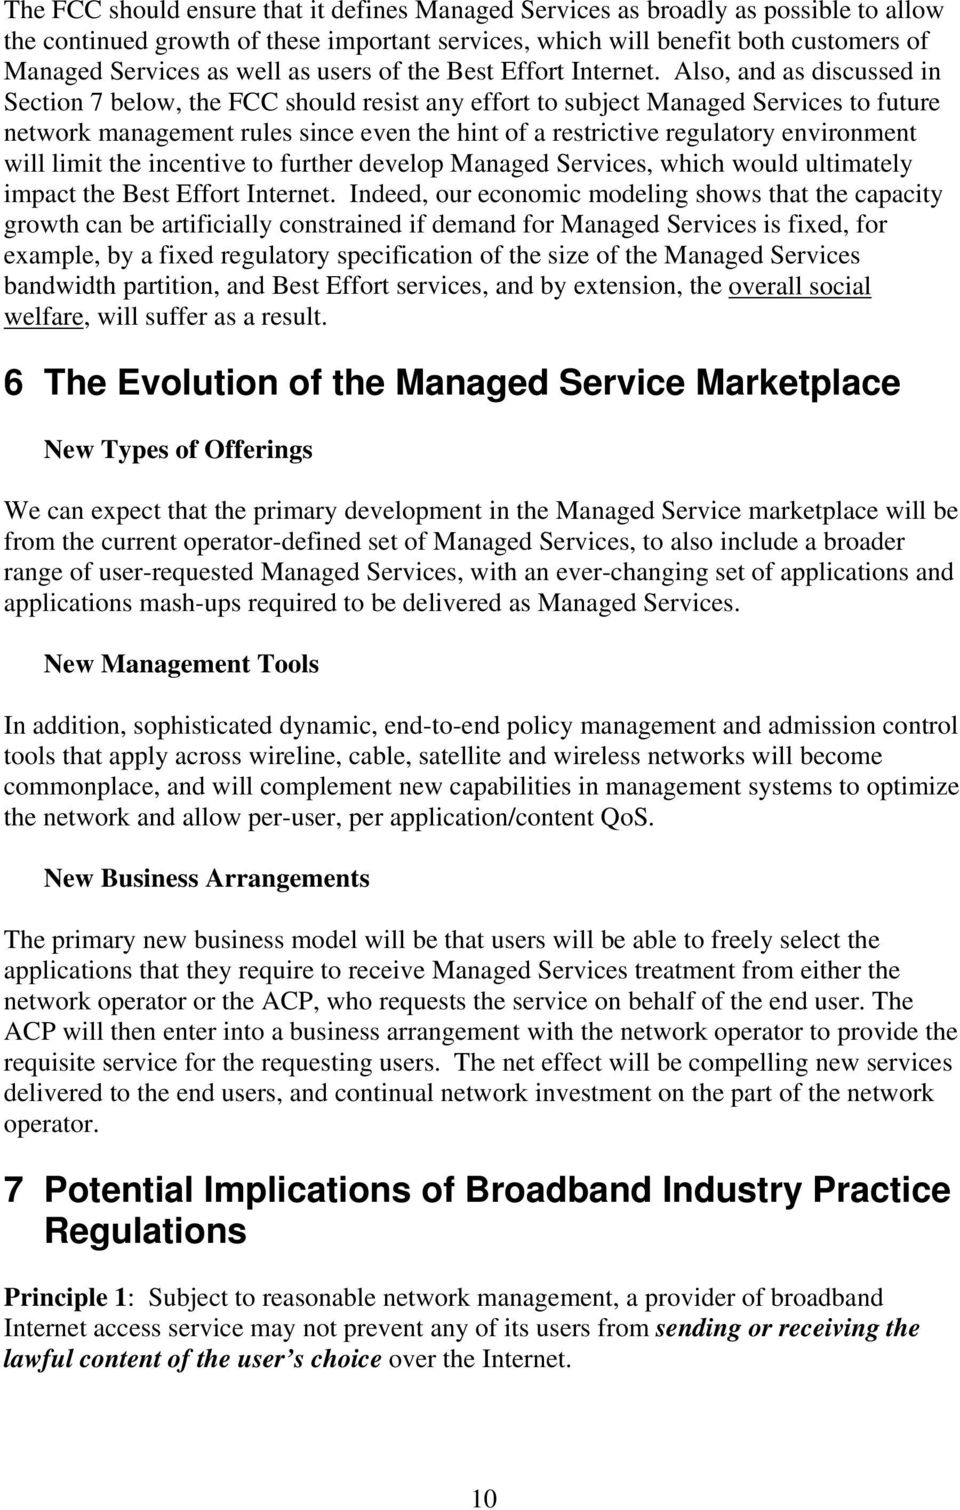 Also, and as discussed in Section 7 below, the FCC should resist any effort to subject Managed Services to future network management rules since even the hint of a restrictive regulatory environment